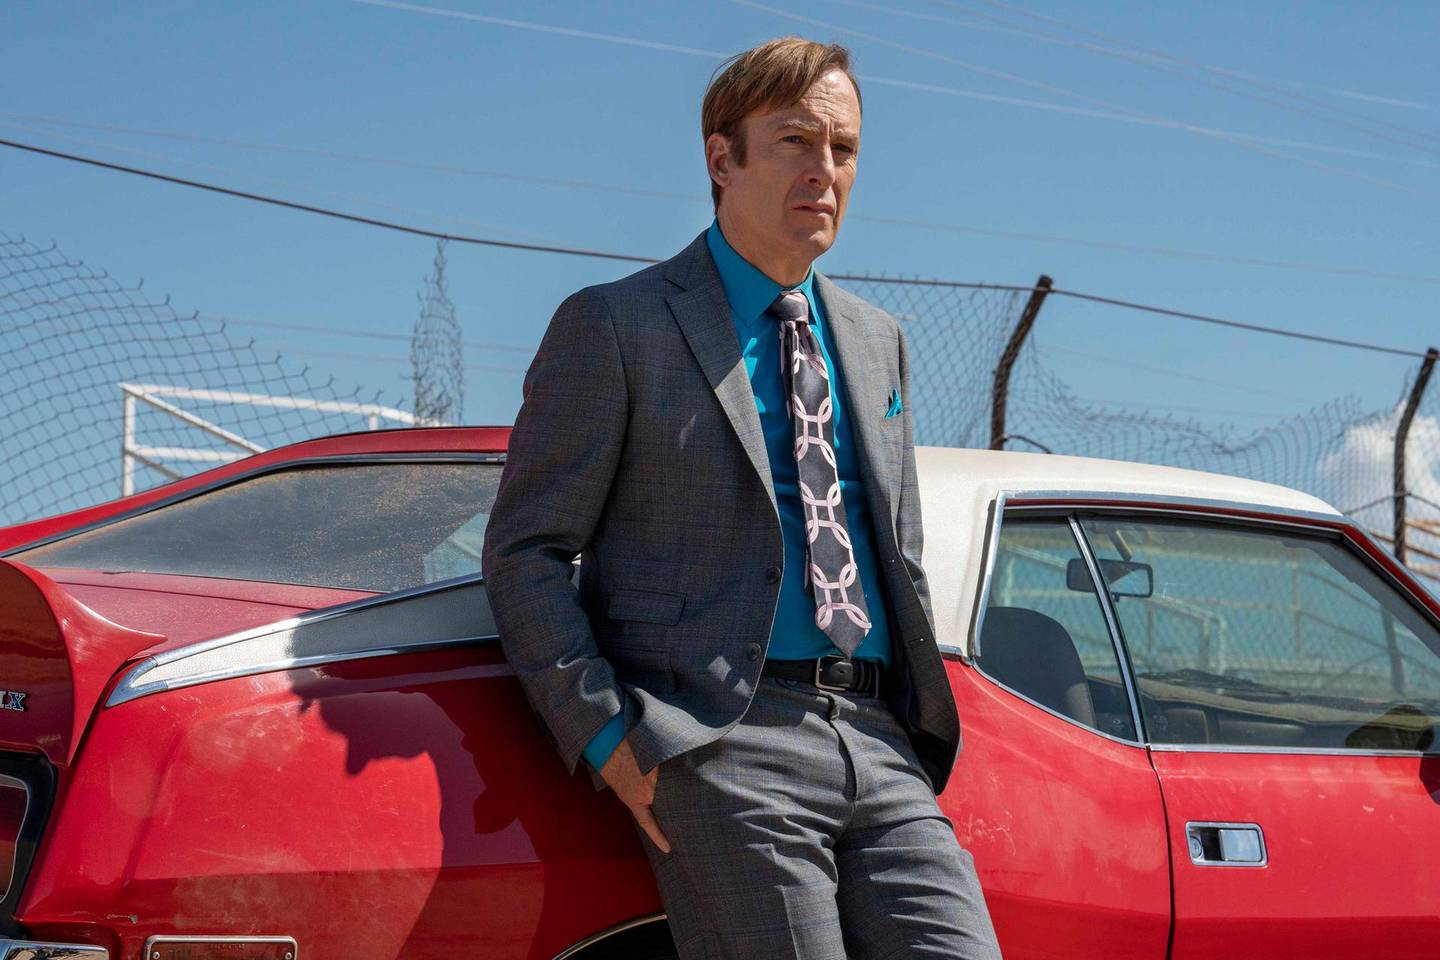 Bob Odenkirk as Jimmy McGill - Better Call Saul _ Season 5, Episode 3 - Photo Credit: Greg Lewis/AMC/Sony Pictures Television